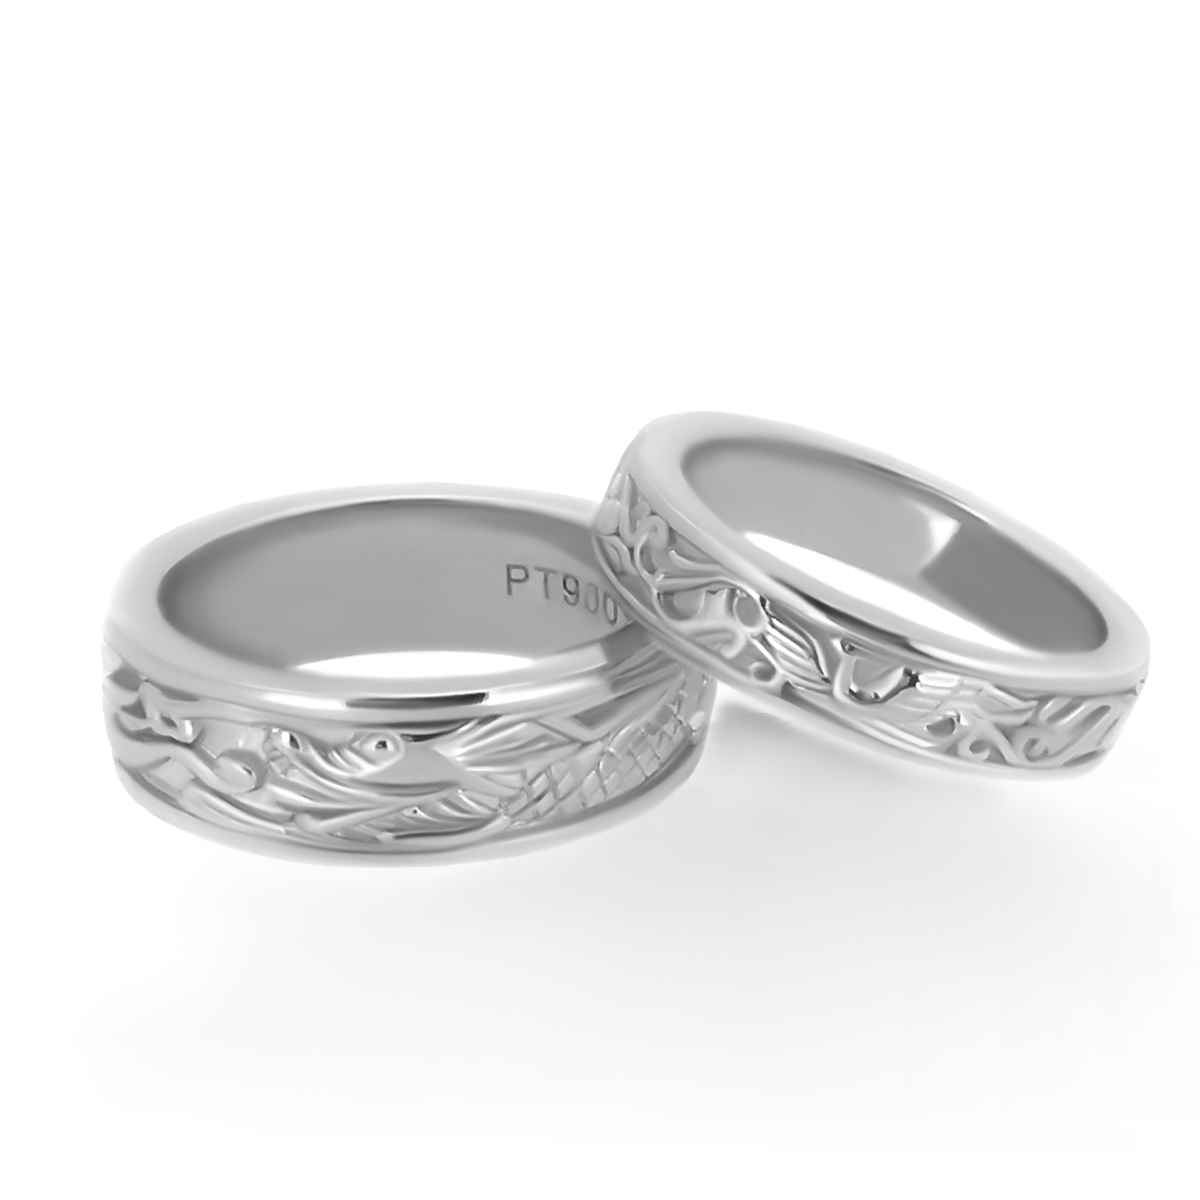 Phoenix and Dragon Wedding Bands Haywards of Hong Kong